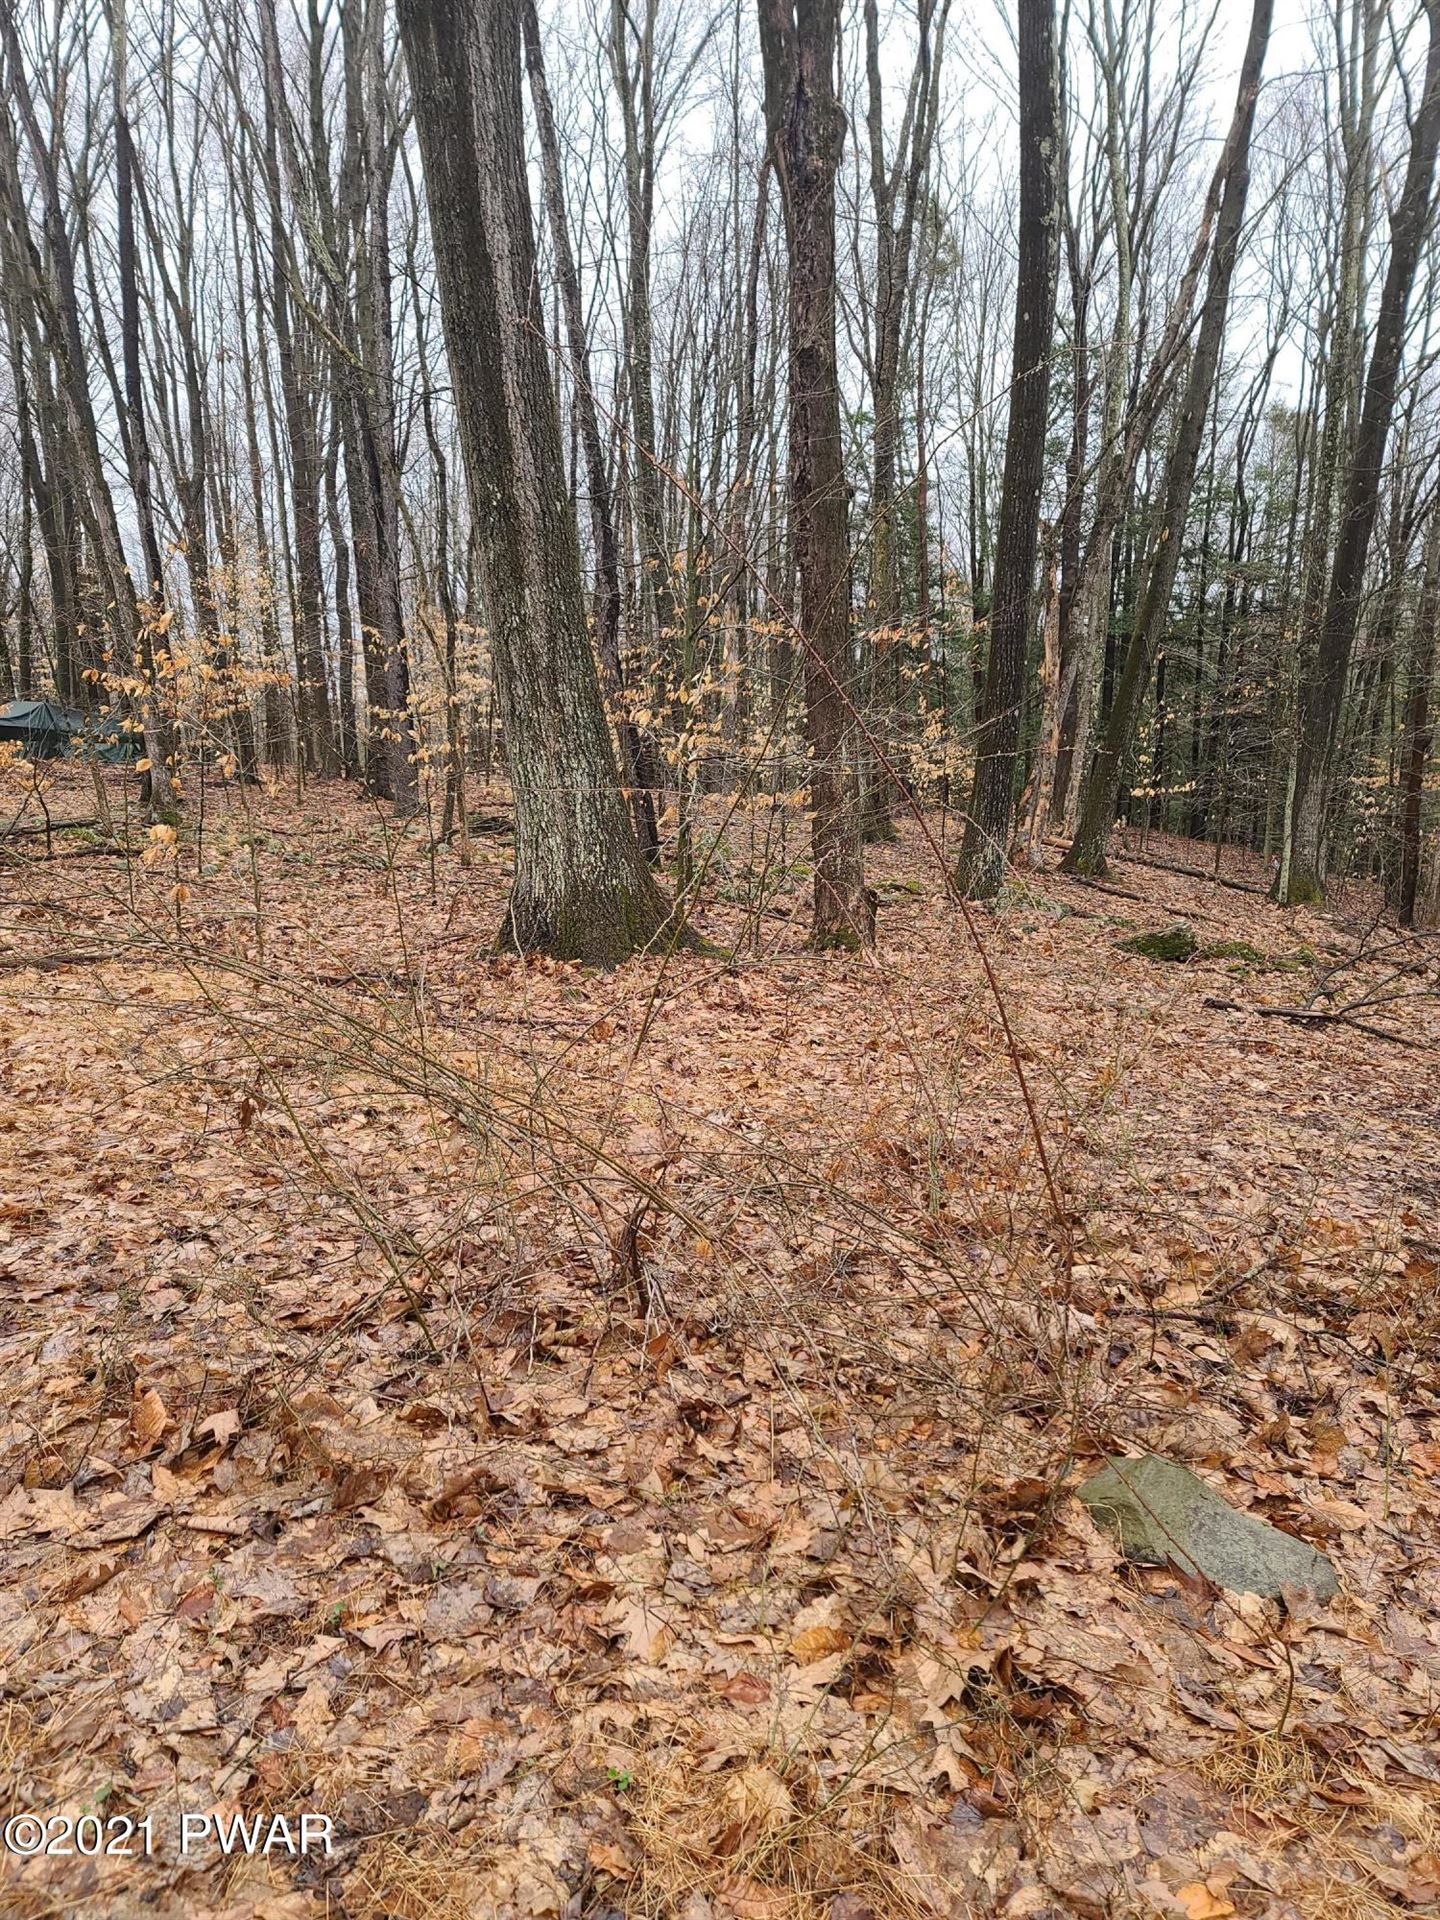 Photo of Lot 1 N Briar Hill Rd, Lakeville, PA 18438 (MLS # 21-1165)